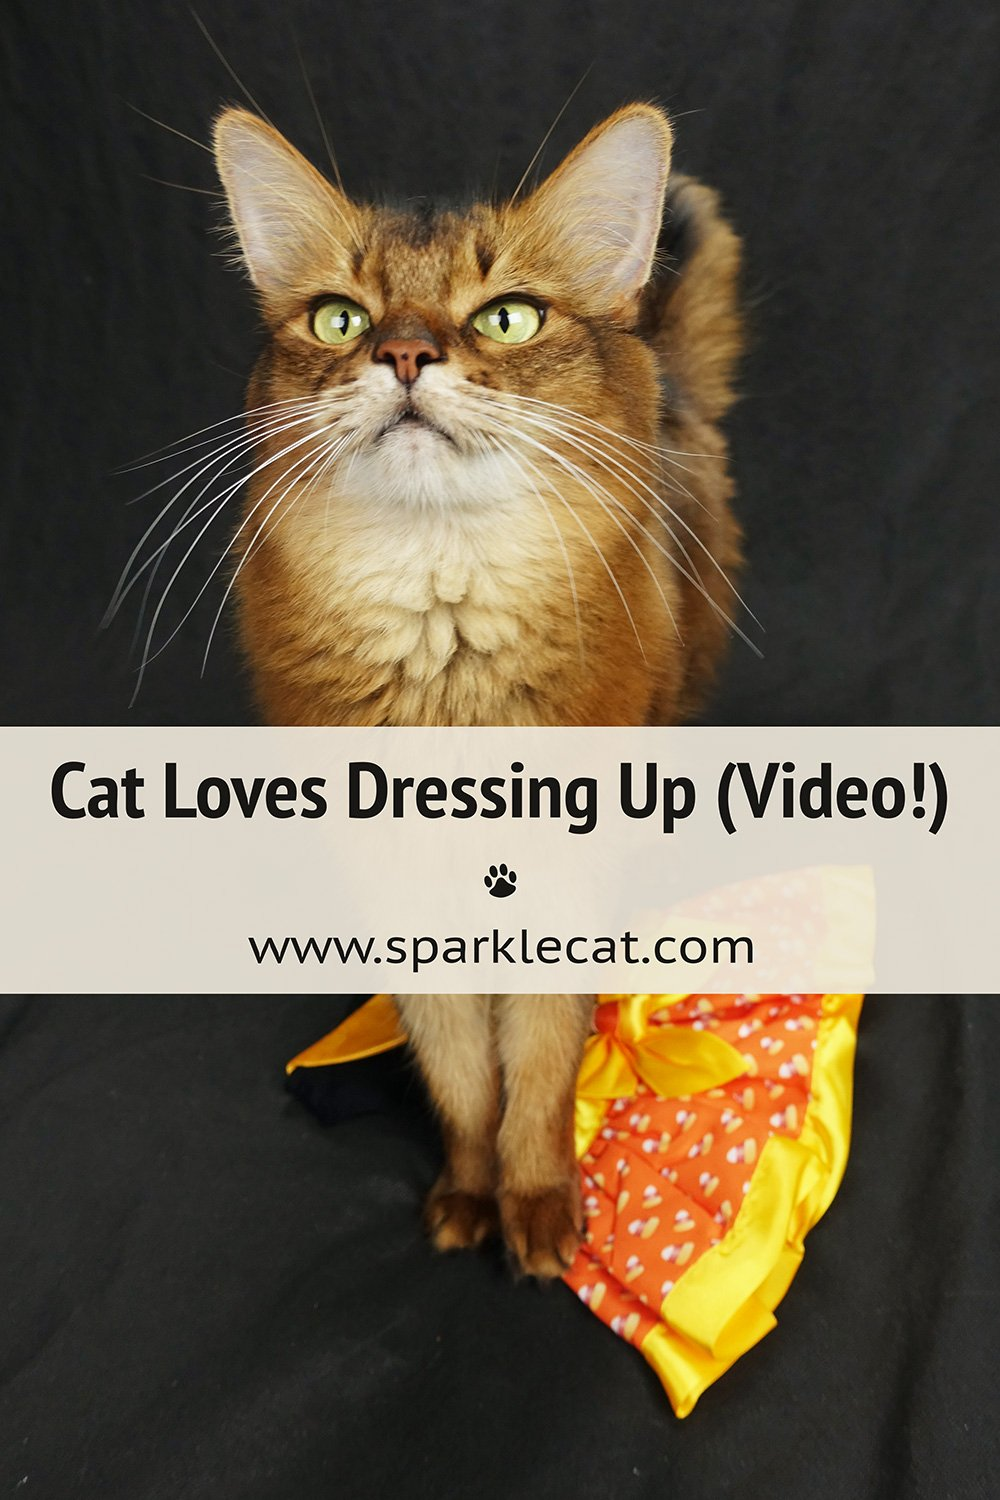 Proof That I Love Wearing Dresses (Video)